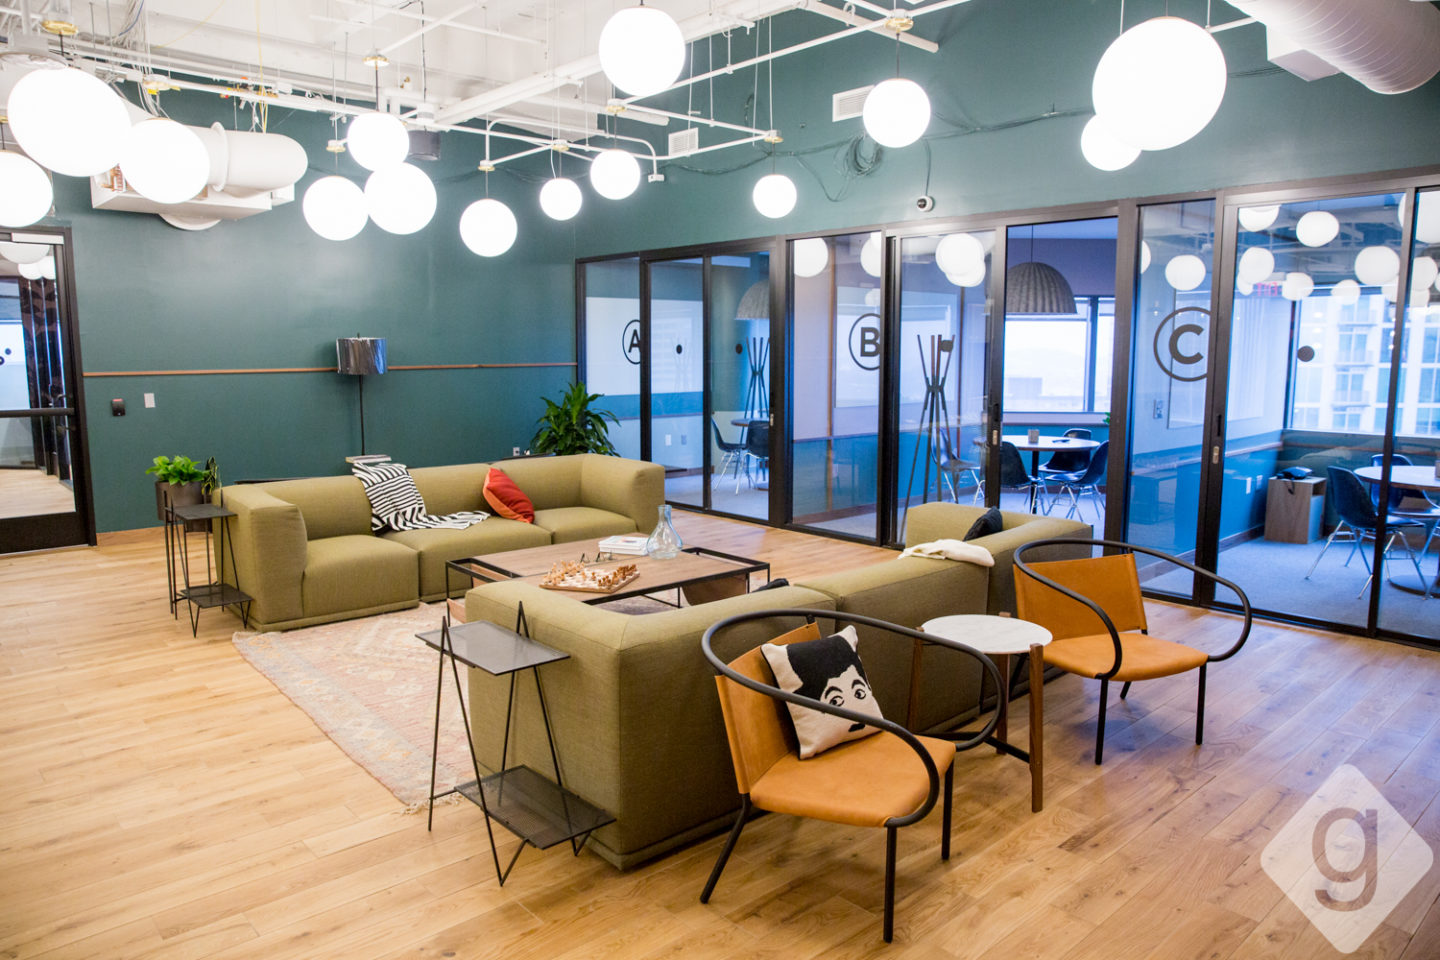 A Look Inside: WeWork, A Co-Working Space in Downtown ...